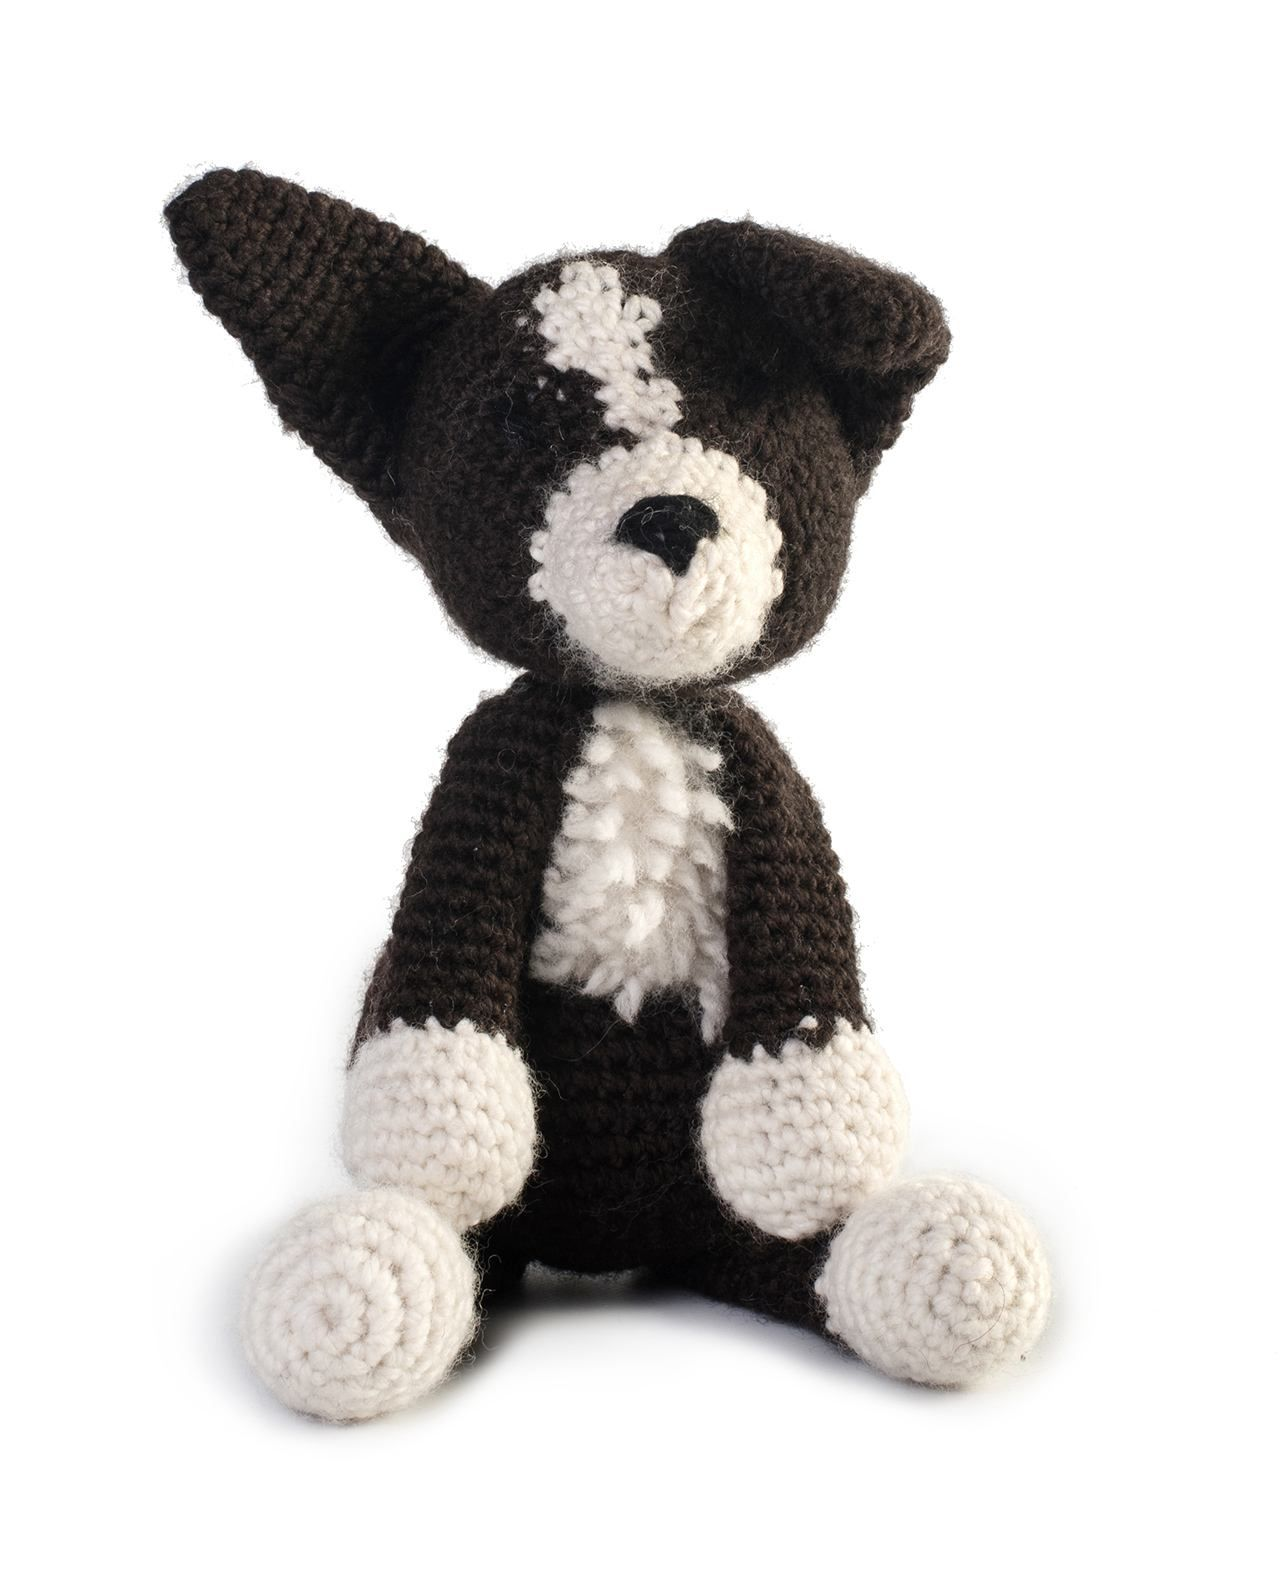 Toft Jed the Border Collie amigurumi crochet kit | crochet | Crochet